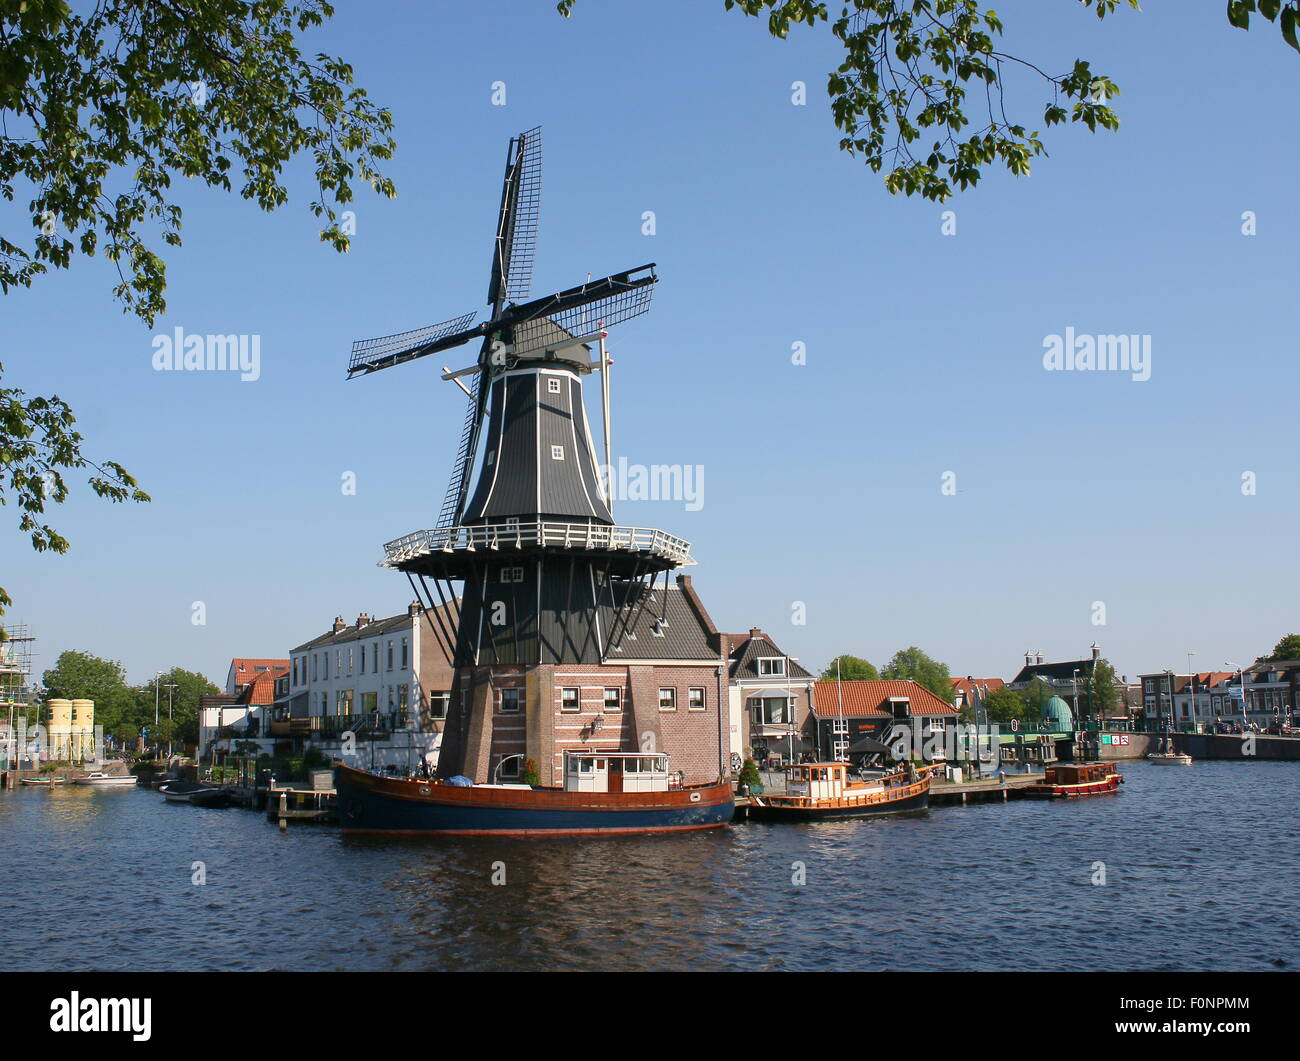 De Adriaan windmill in Haarlem, The Netherlands. Rebuilt in 2002. The original windmill dates from 1779. Seen from - Stock Image